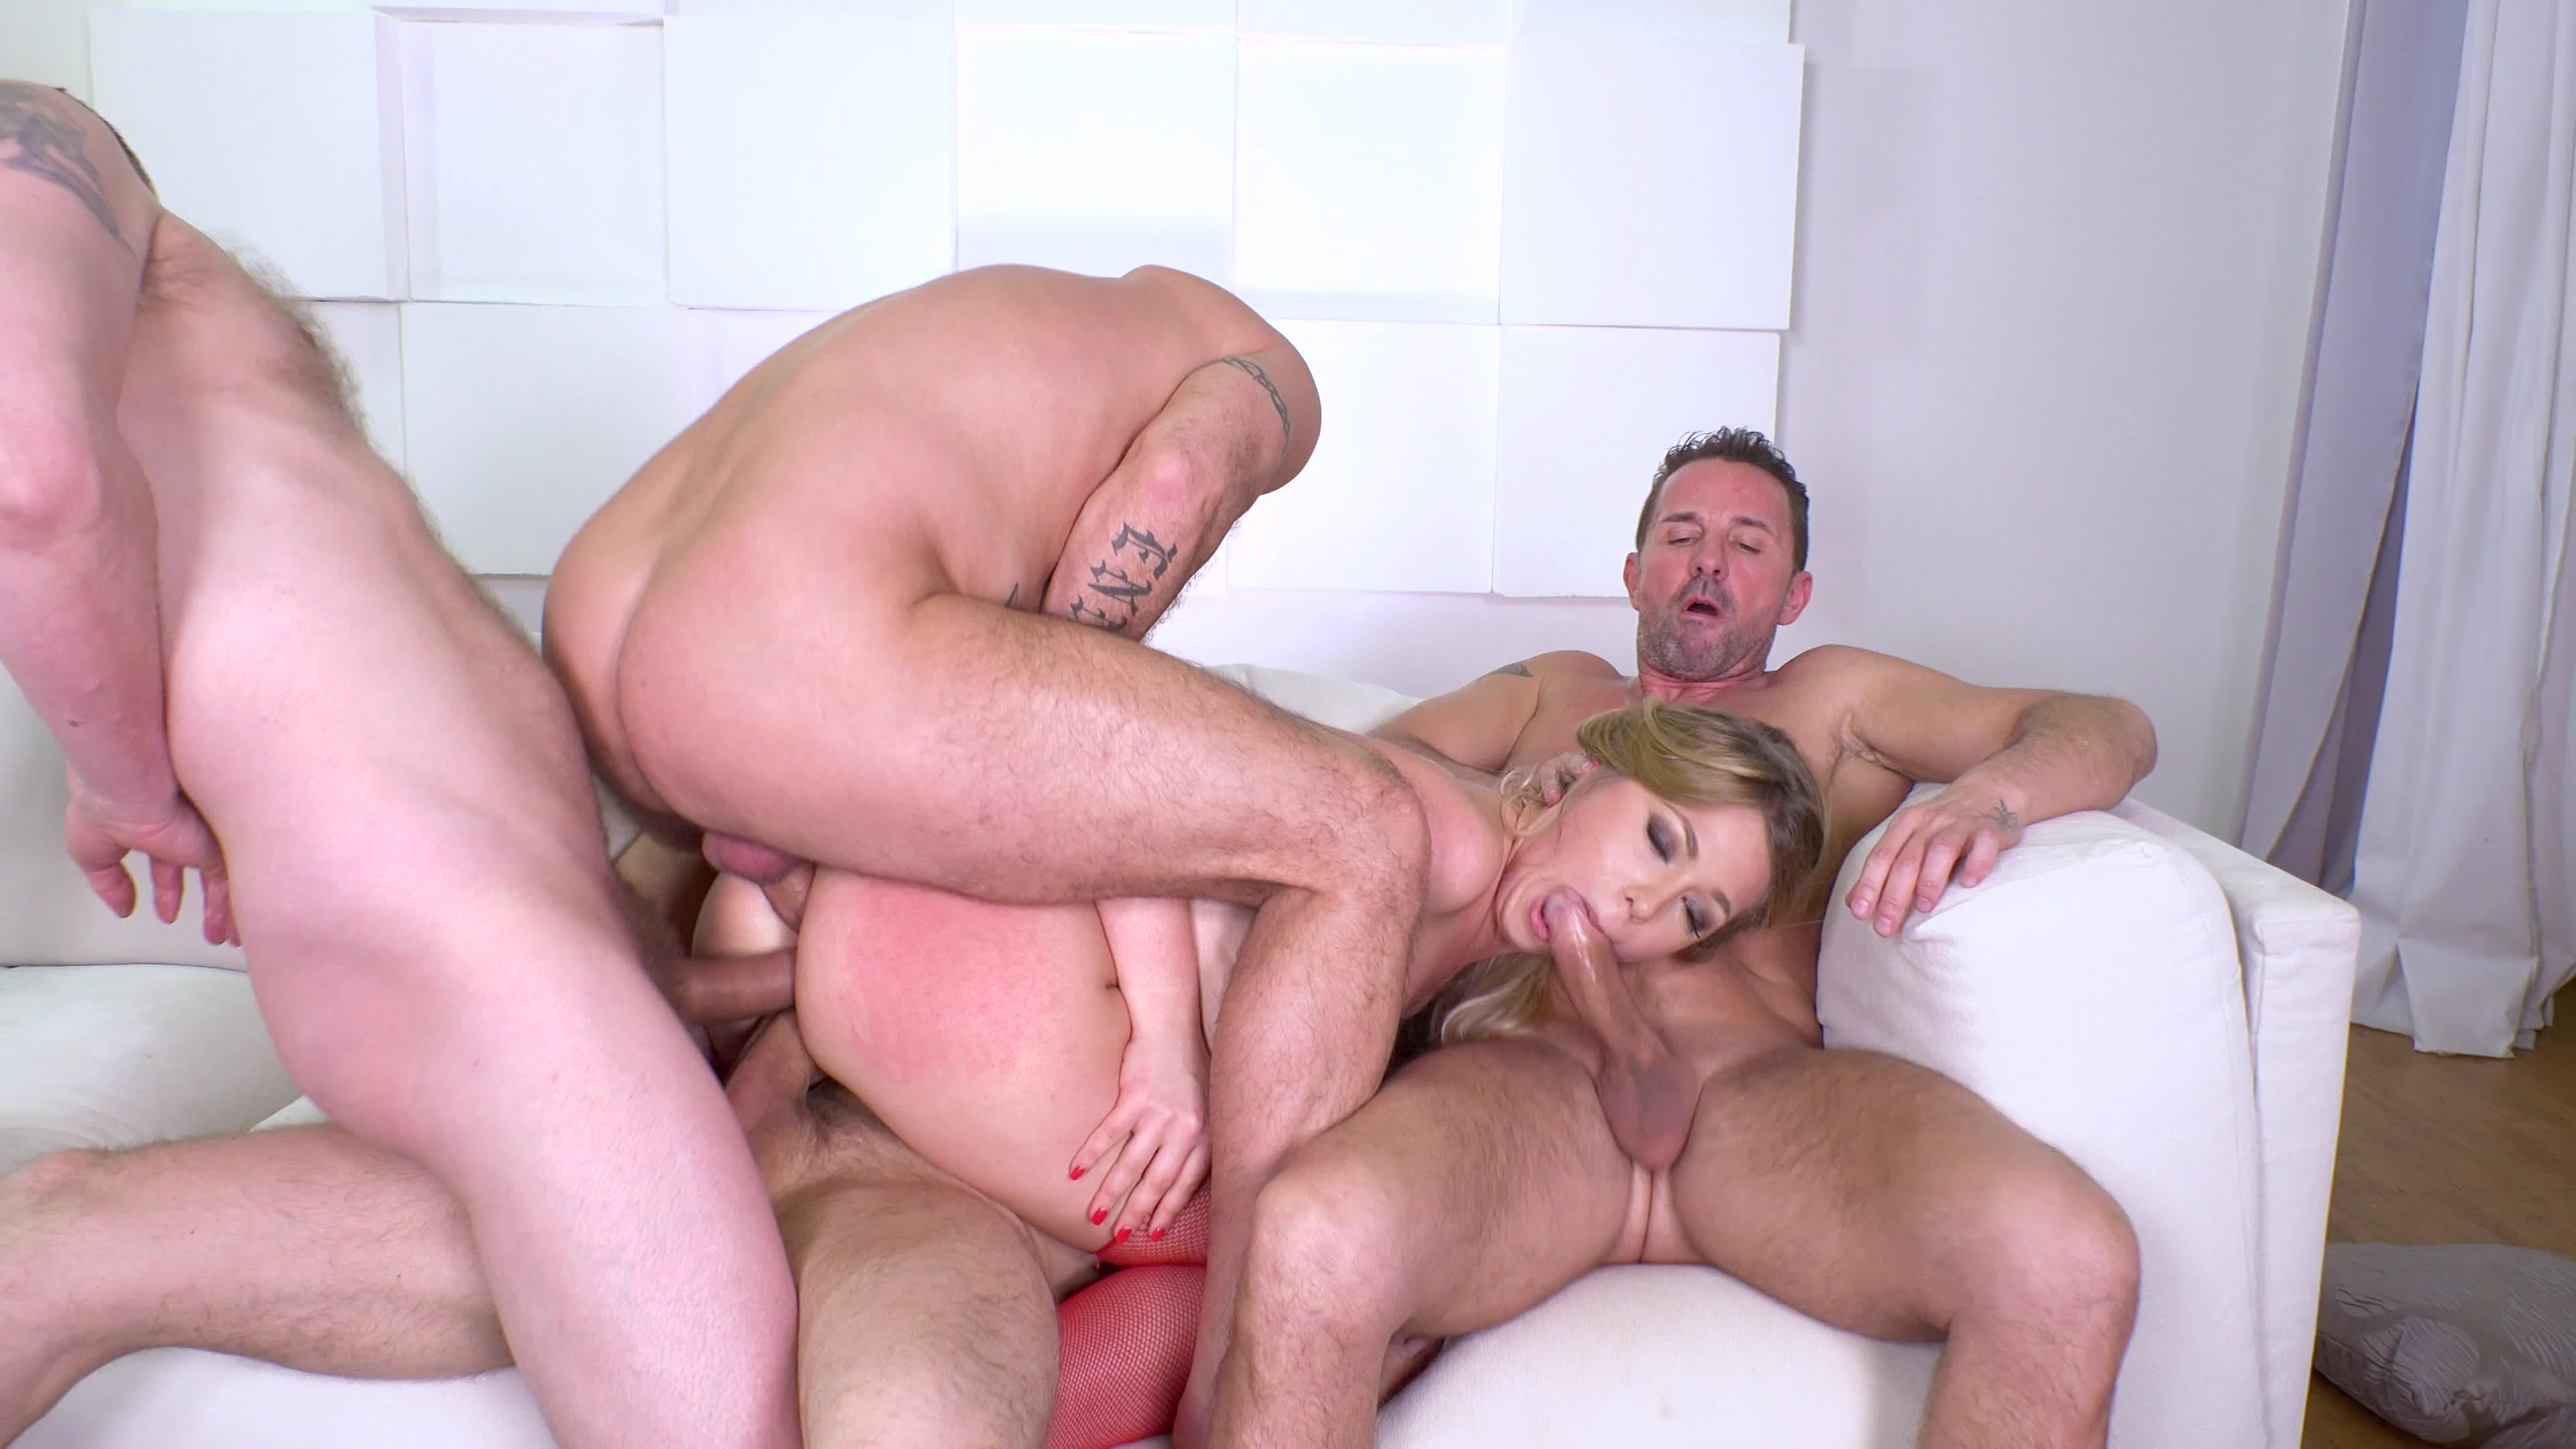 Tgirl ashley george assfucked deeply on gotporn